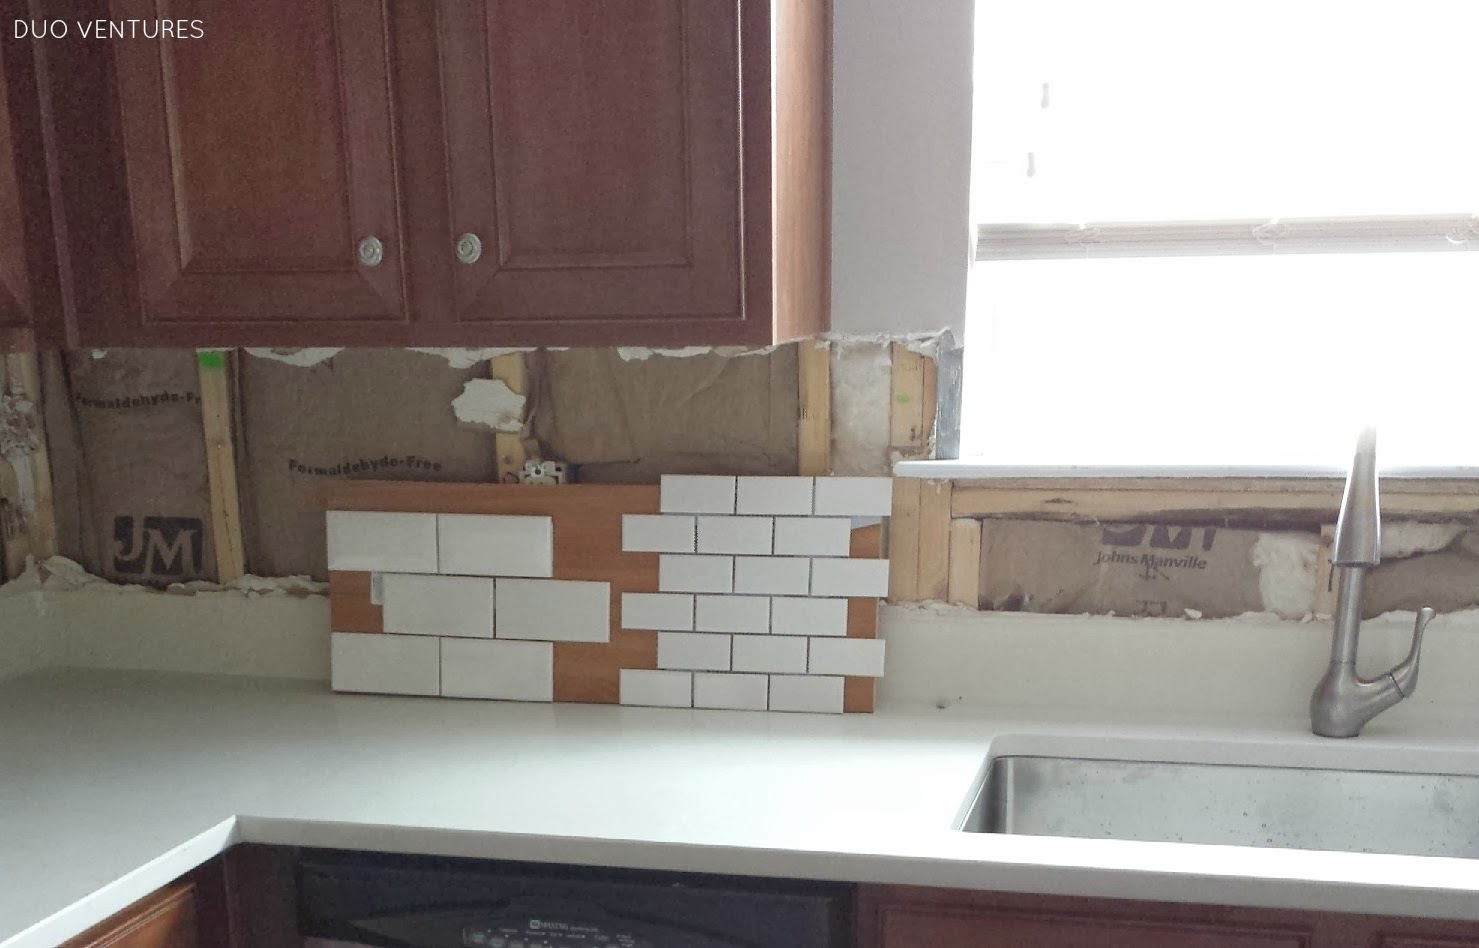 Kitchen Tiling Duo Ventures Kitchen Makeover Subway Tile Backsplash Installation